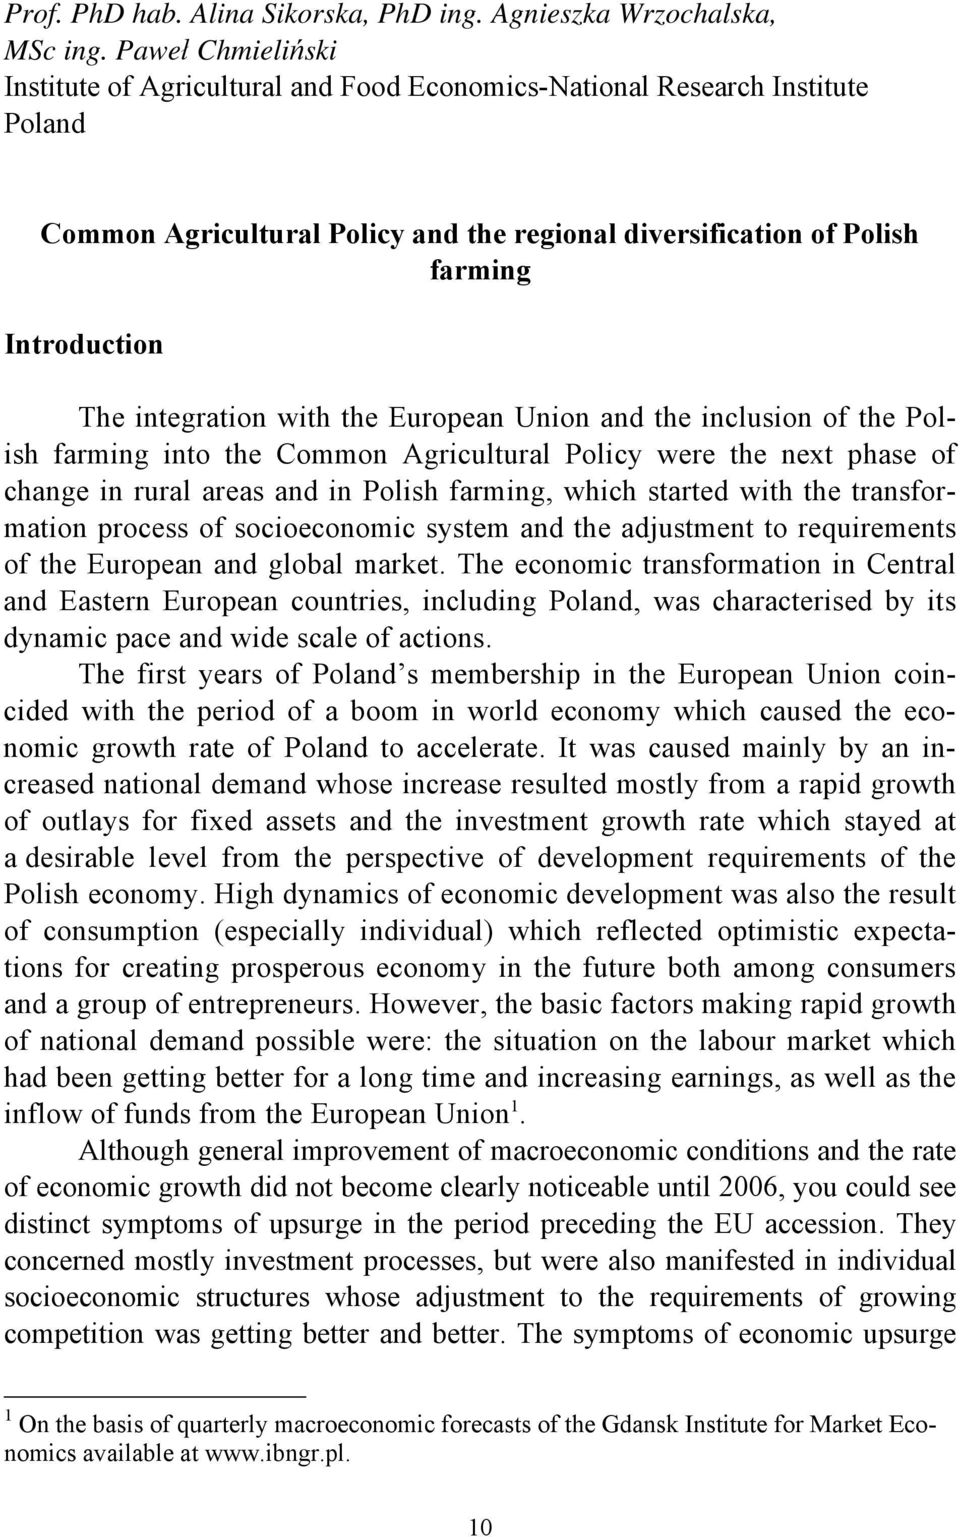 integration with the European Union and the inclusion of the Polish farming into the Common Agricultural Policy were the next phase of change in rural areas and in Polish farming, which started with